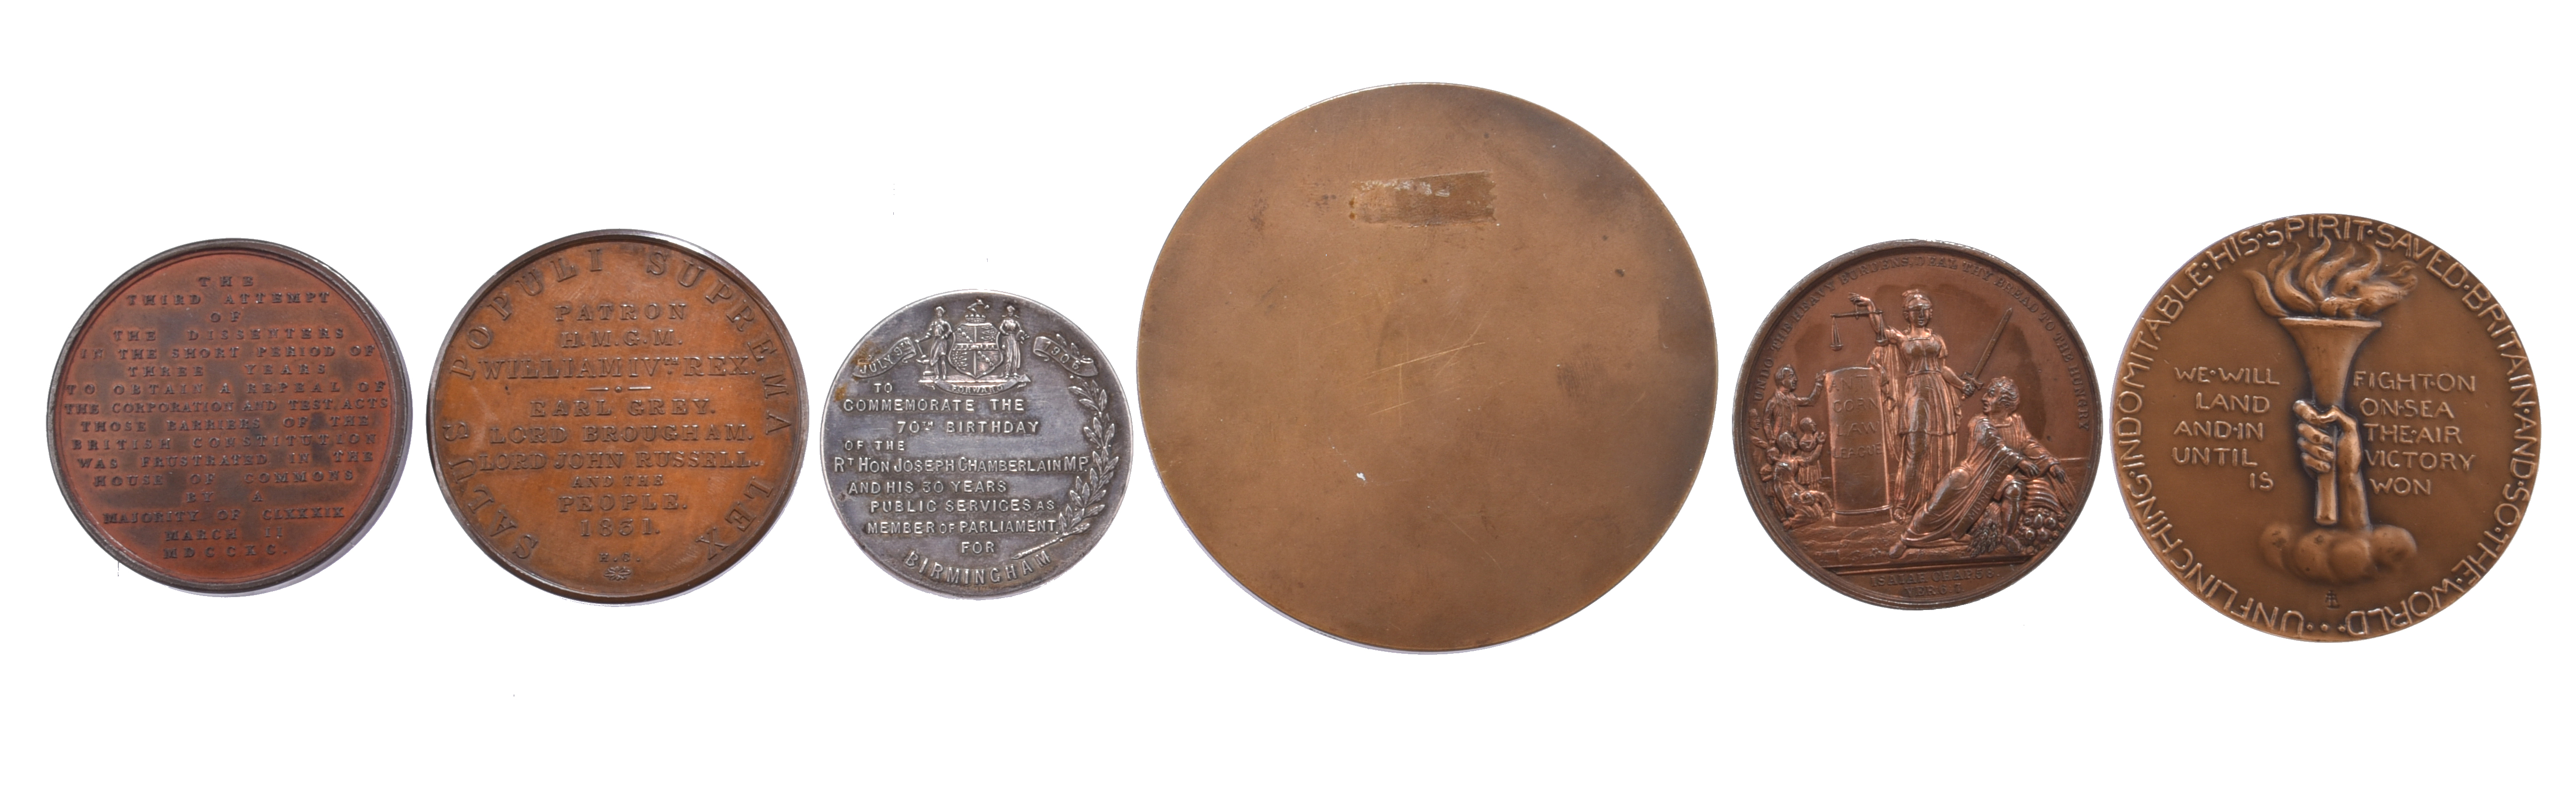 A quantity of commemorative medals, political themes, including: Church and King Club Manchester - Image 2 of 2